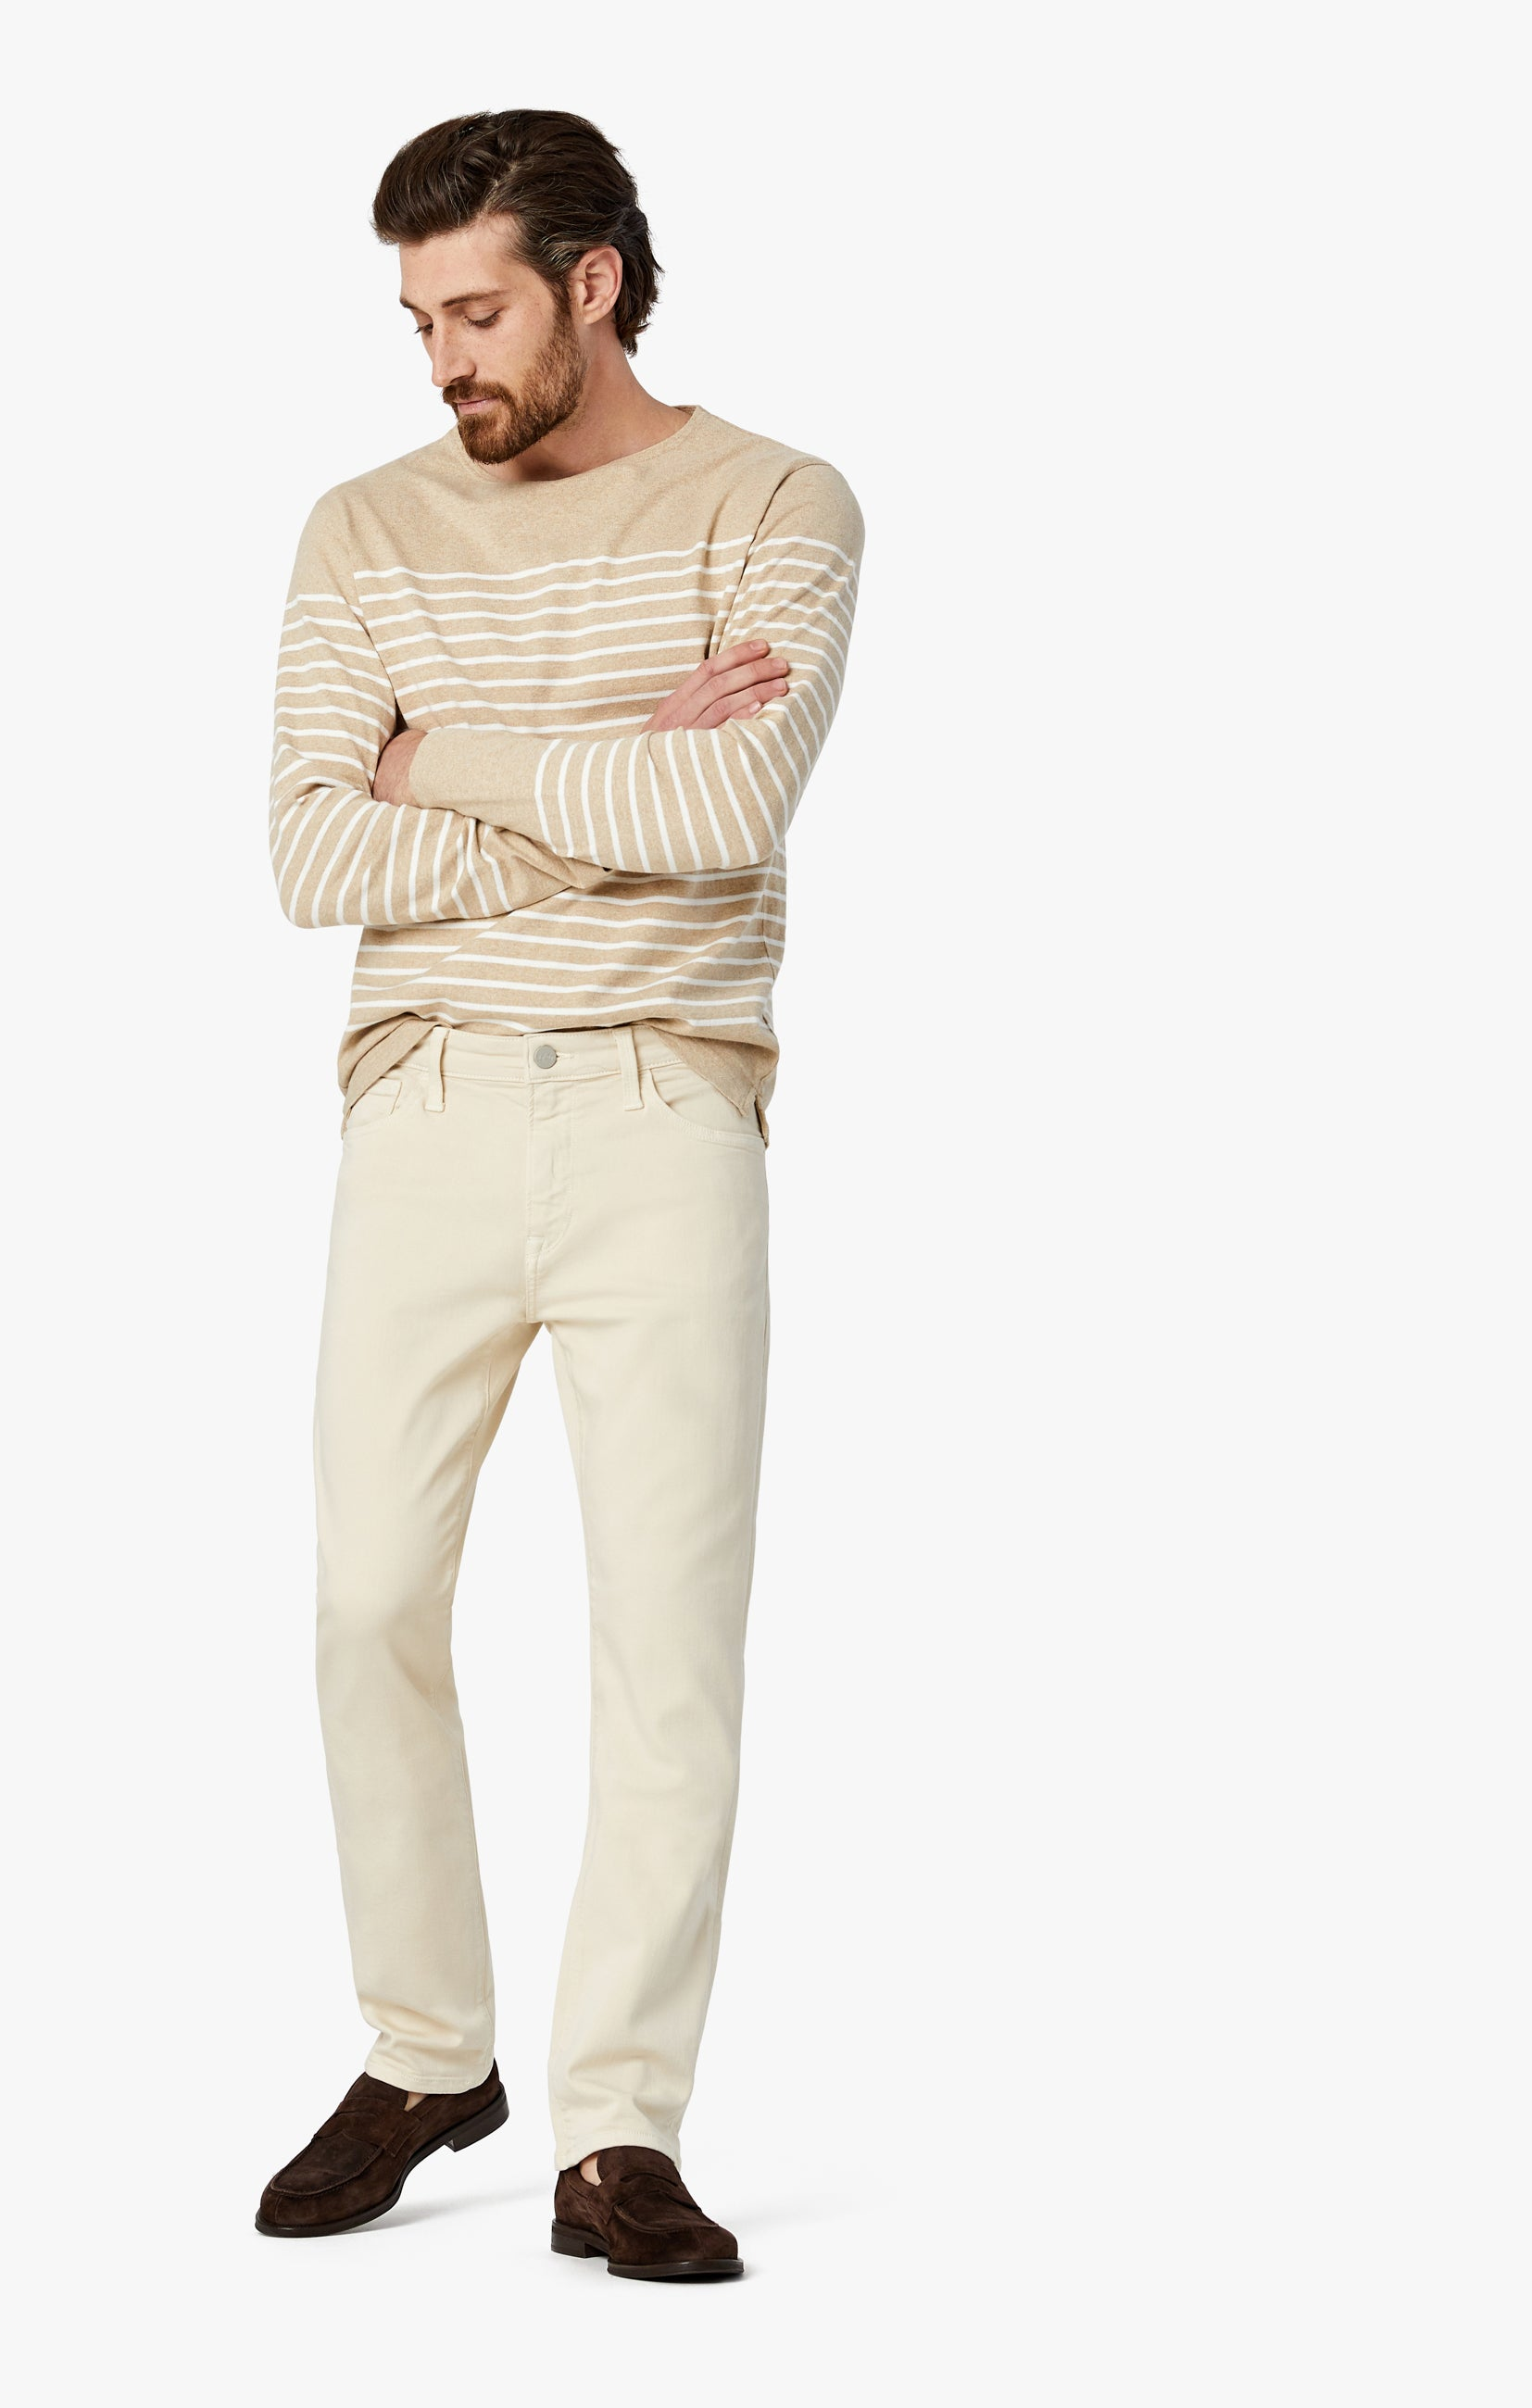 Cool Tapered Leg Pants In Natural Comfort Image 1